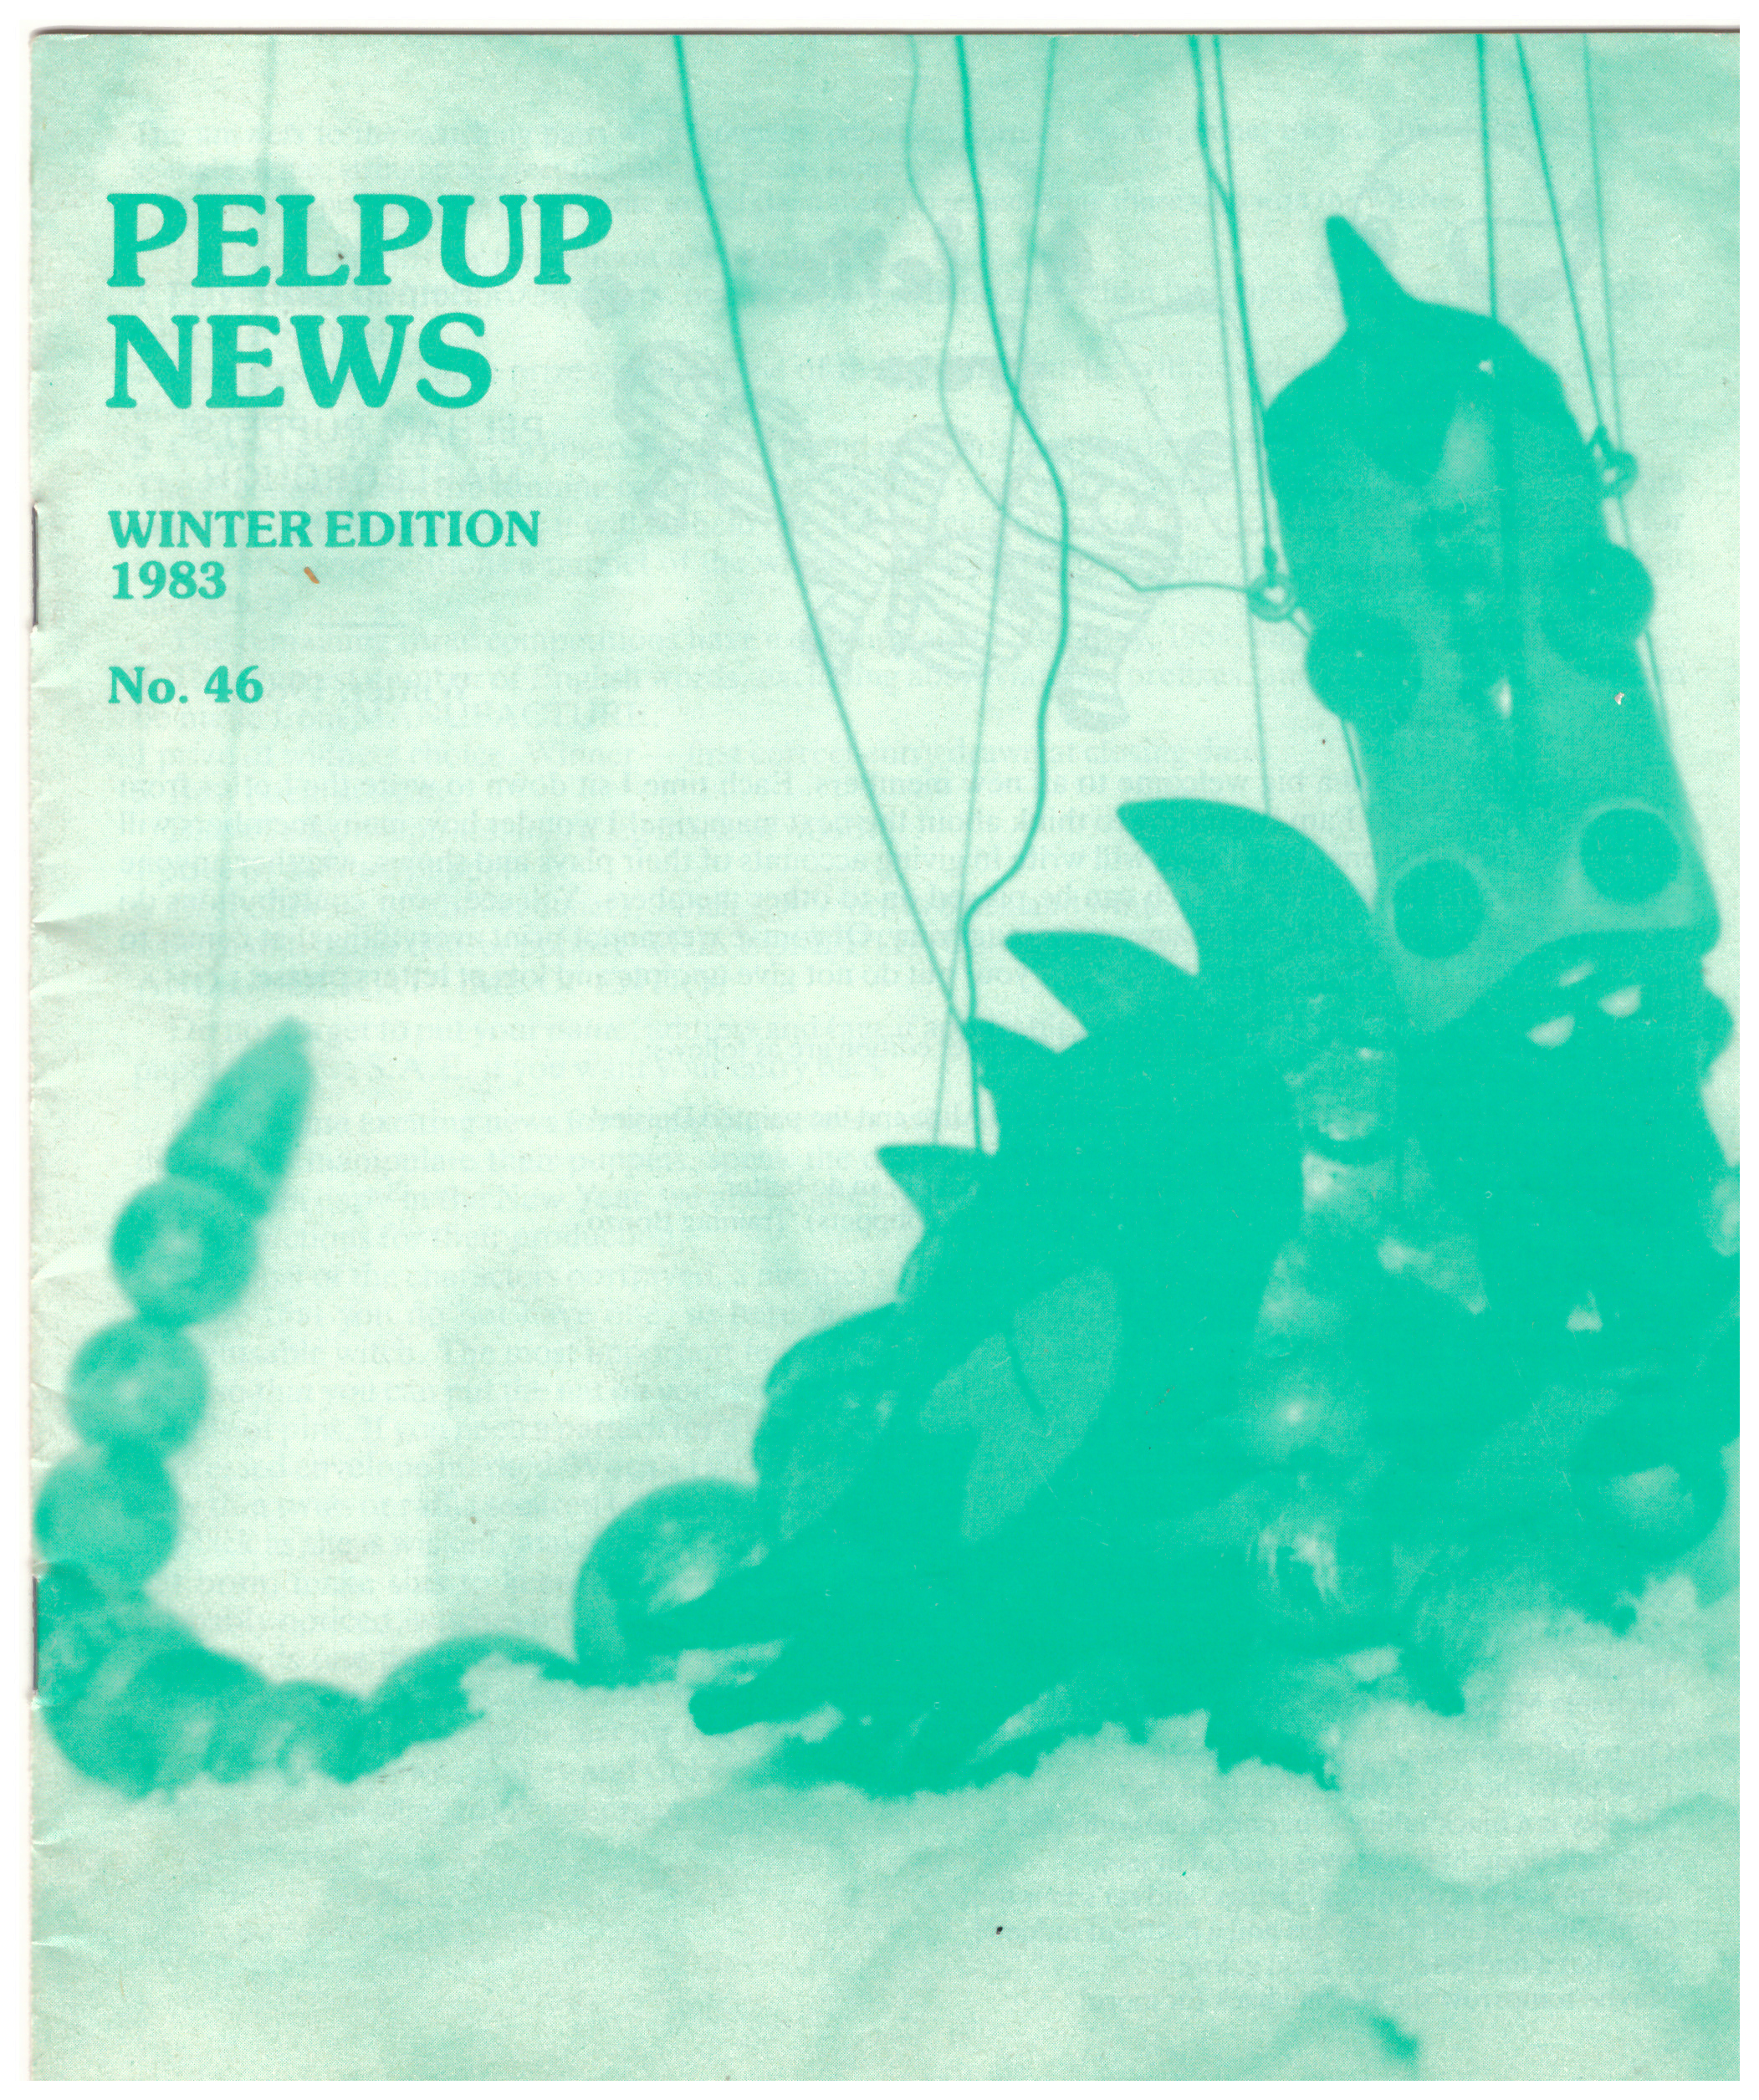 Winter Edition 1983 - Number 46